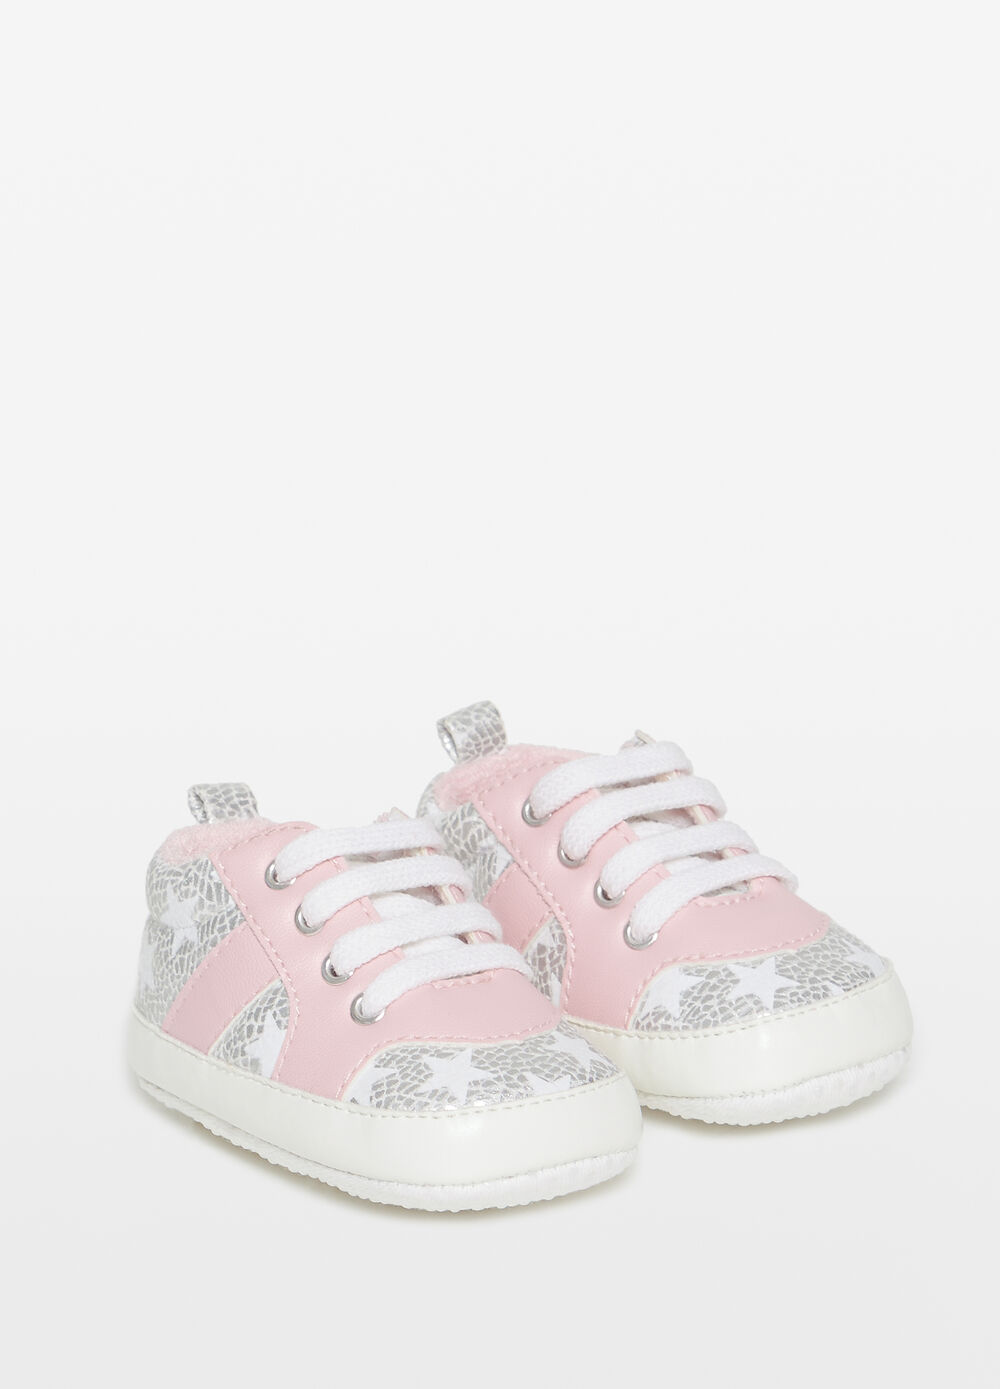 Glitter sneakers with star pattern